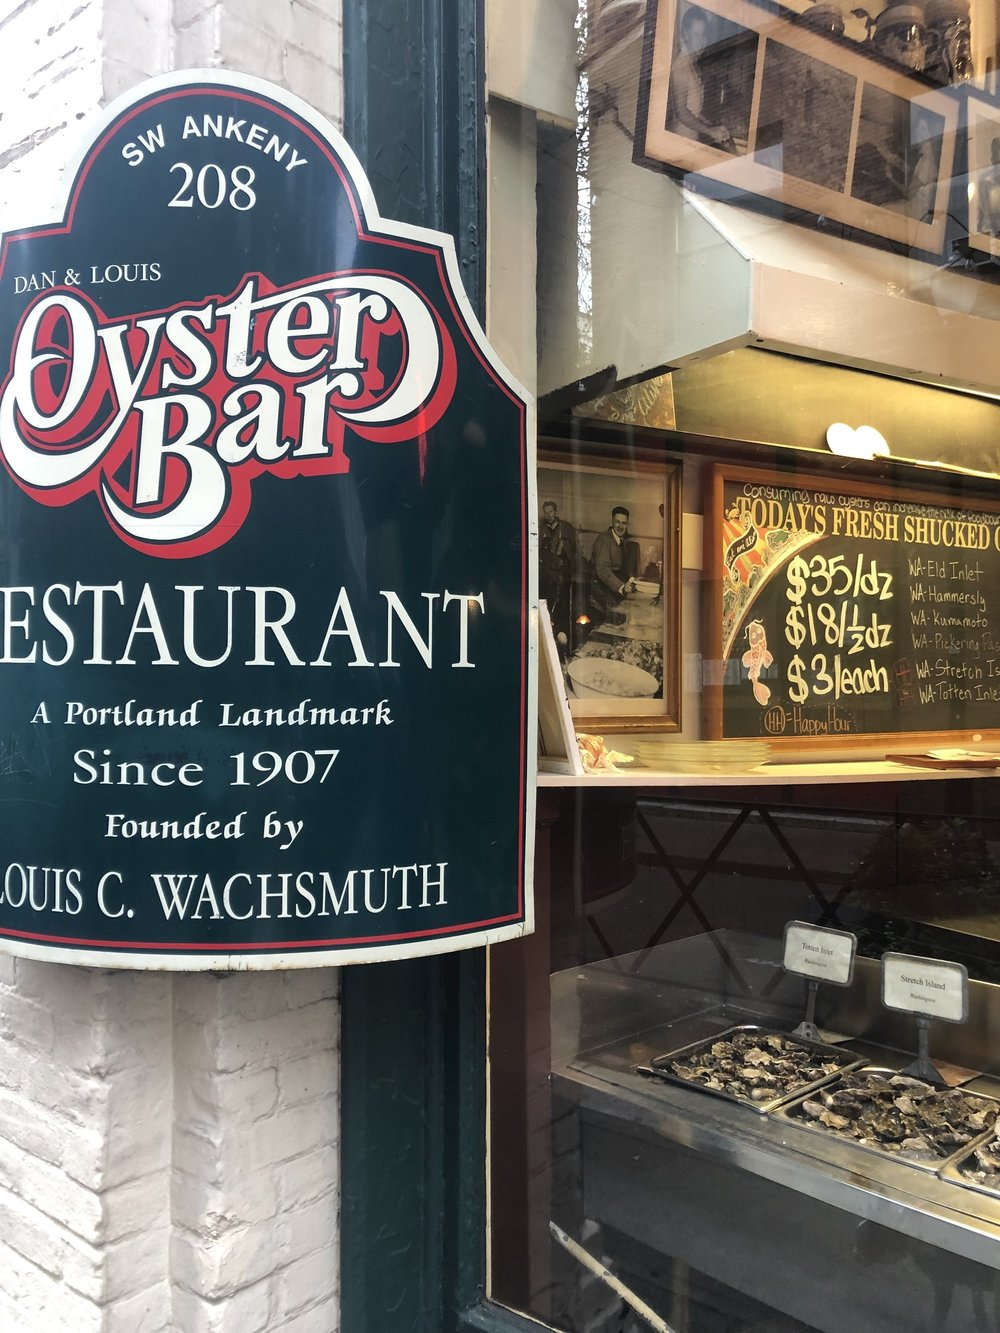 PNW Oysters